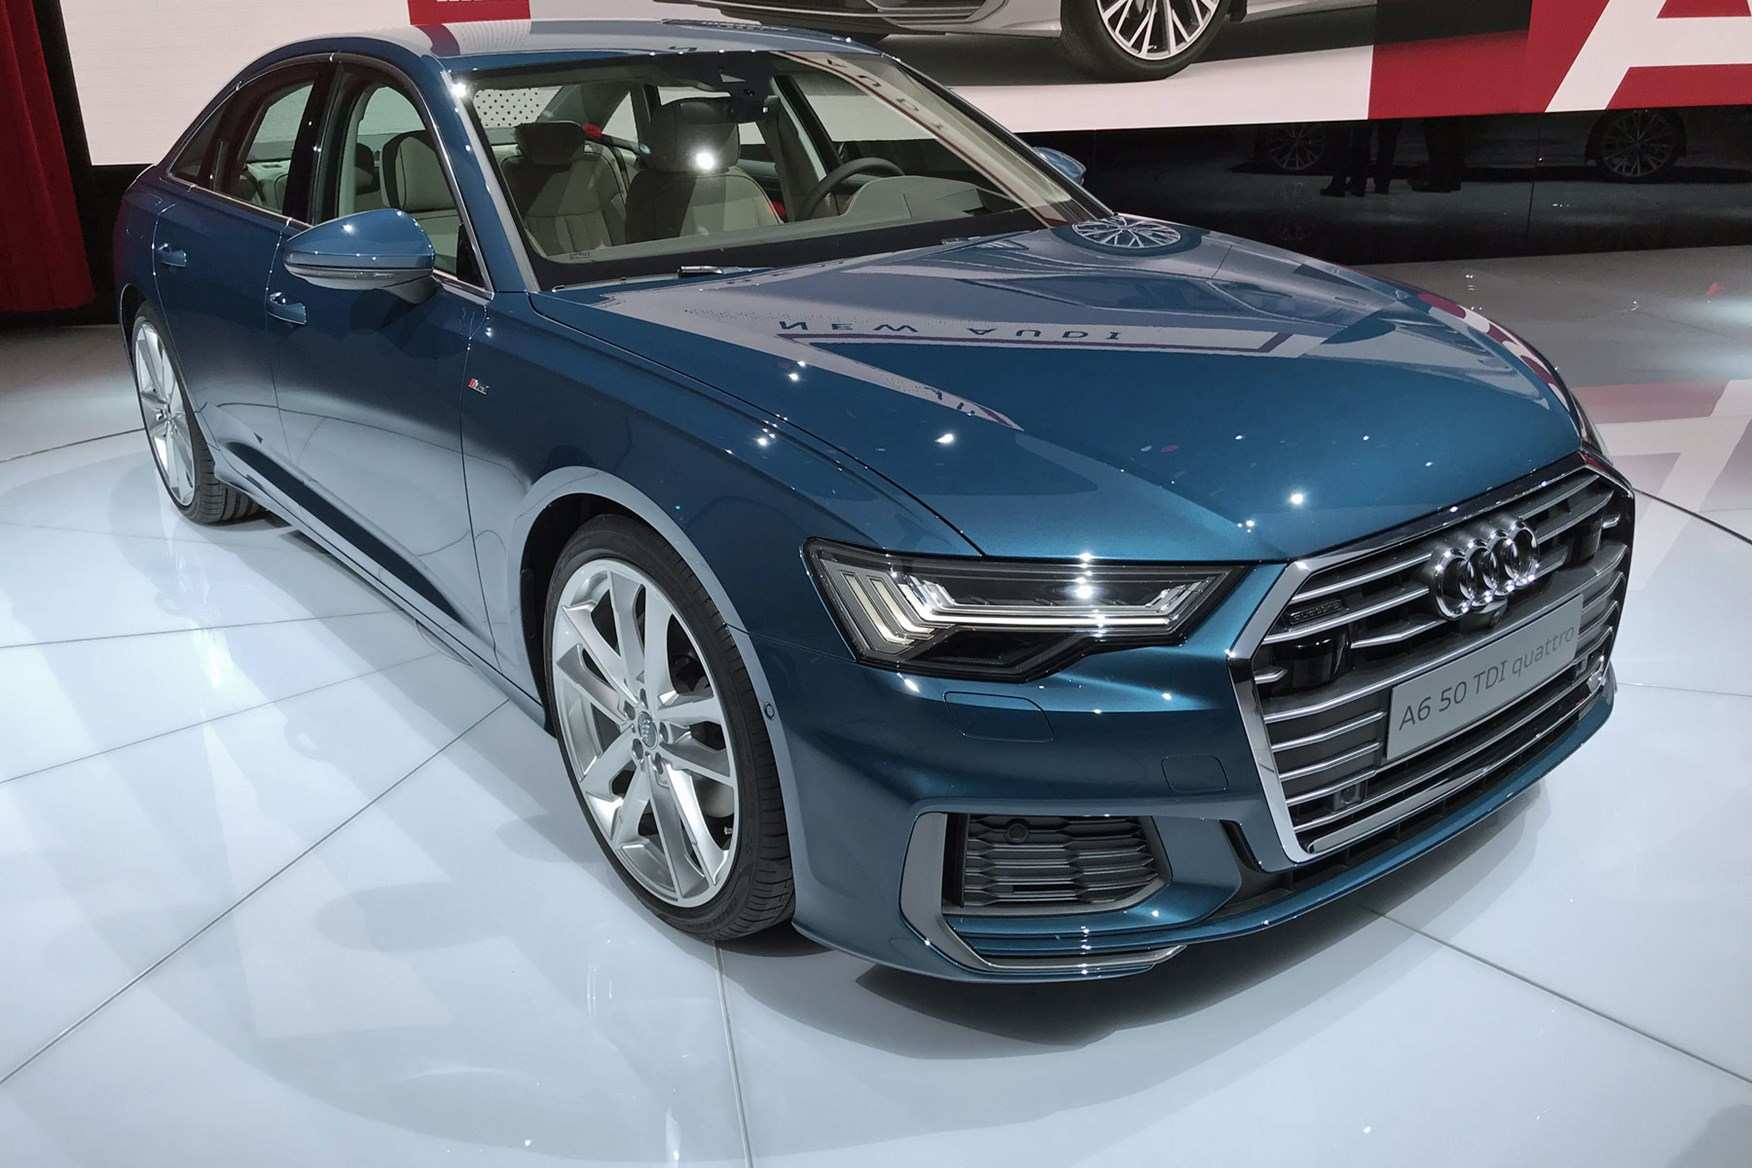 87 Great Audi A6 2019 Geneva Review Prices by Audi A6 2019 Geneva Review